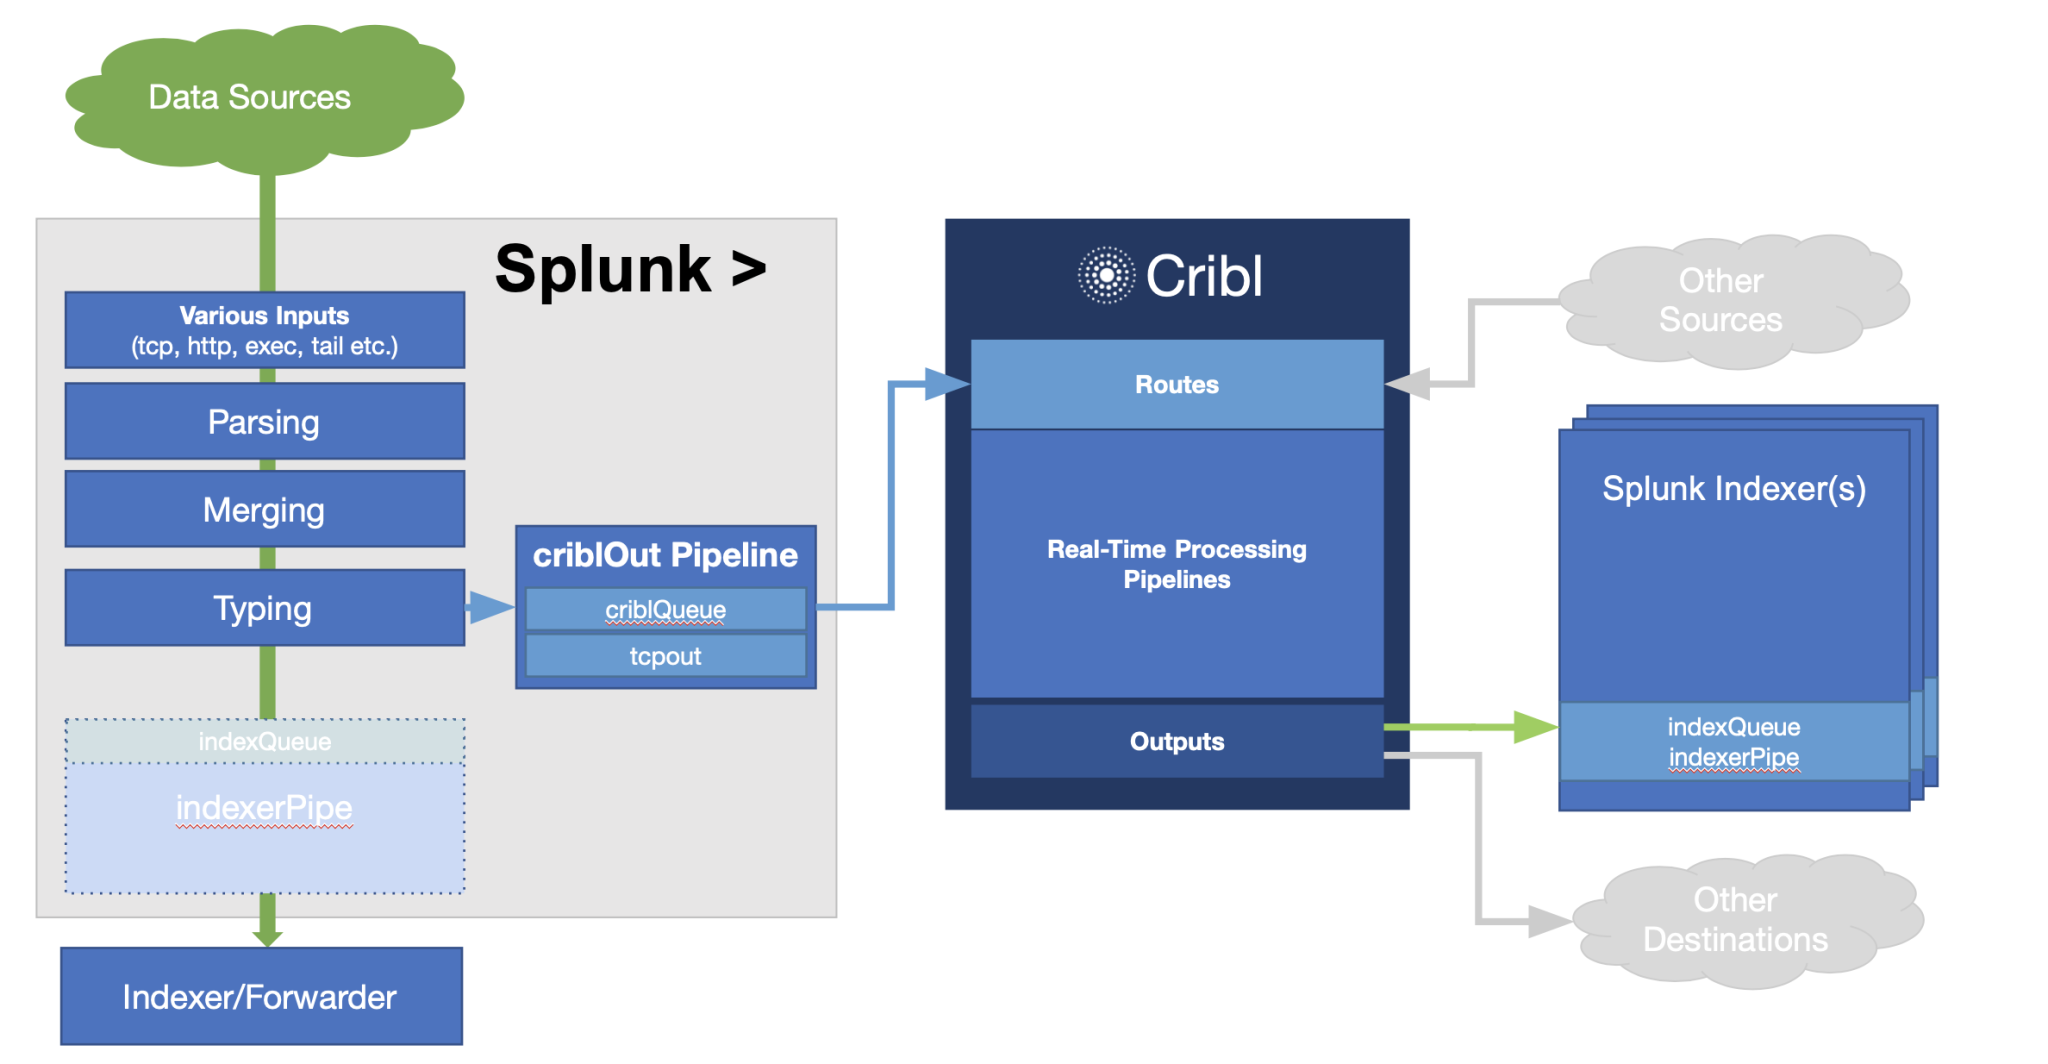 splunk-cribl-integration-v1.1